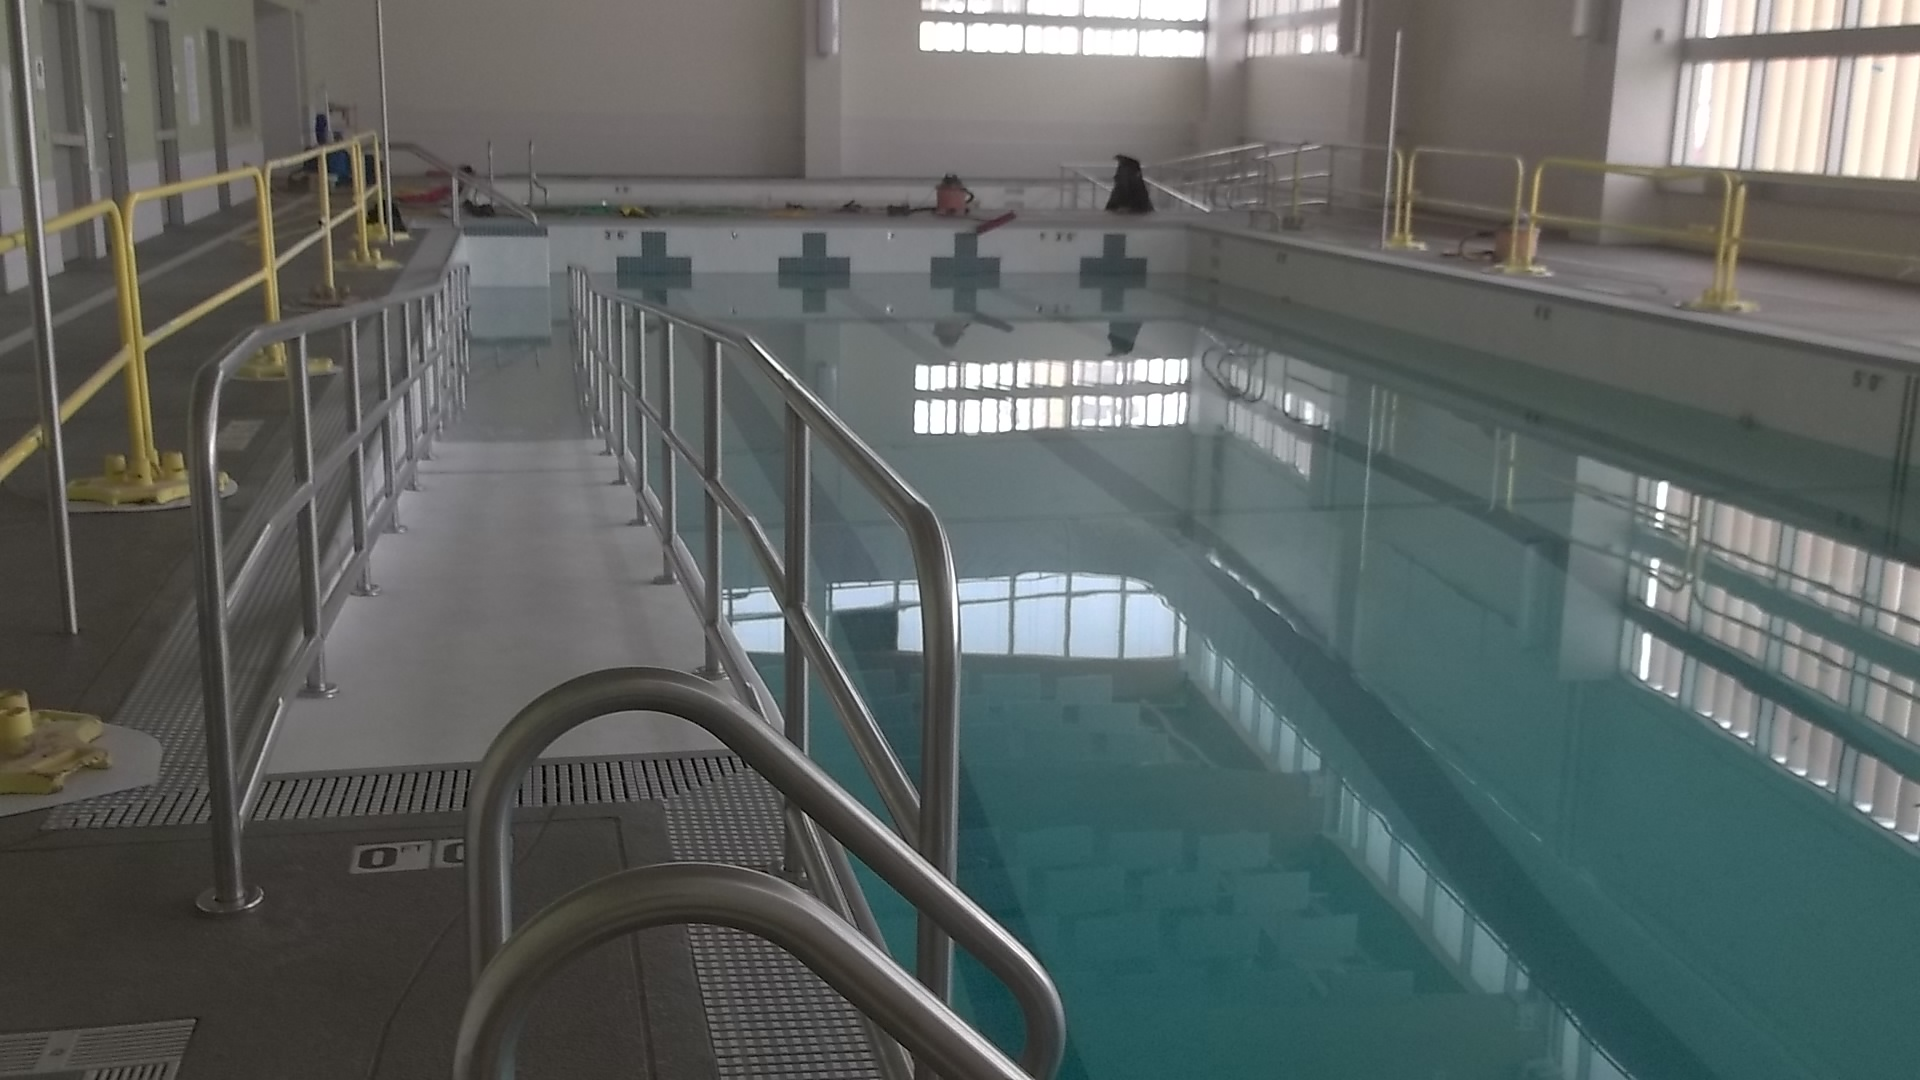 Ramp and stair area into the pool at the ADA Compliance for Pools